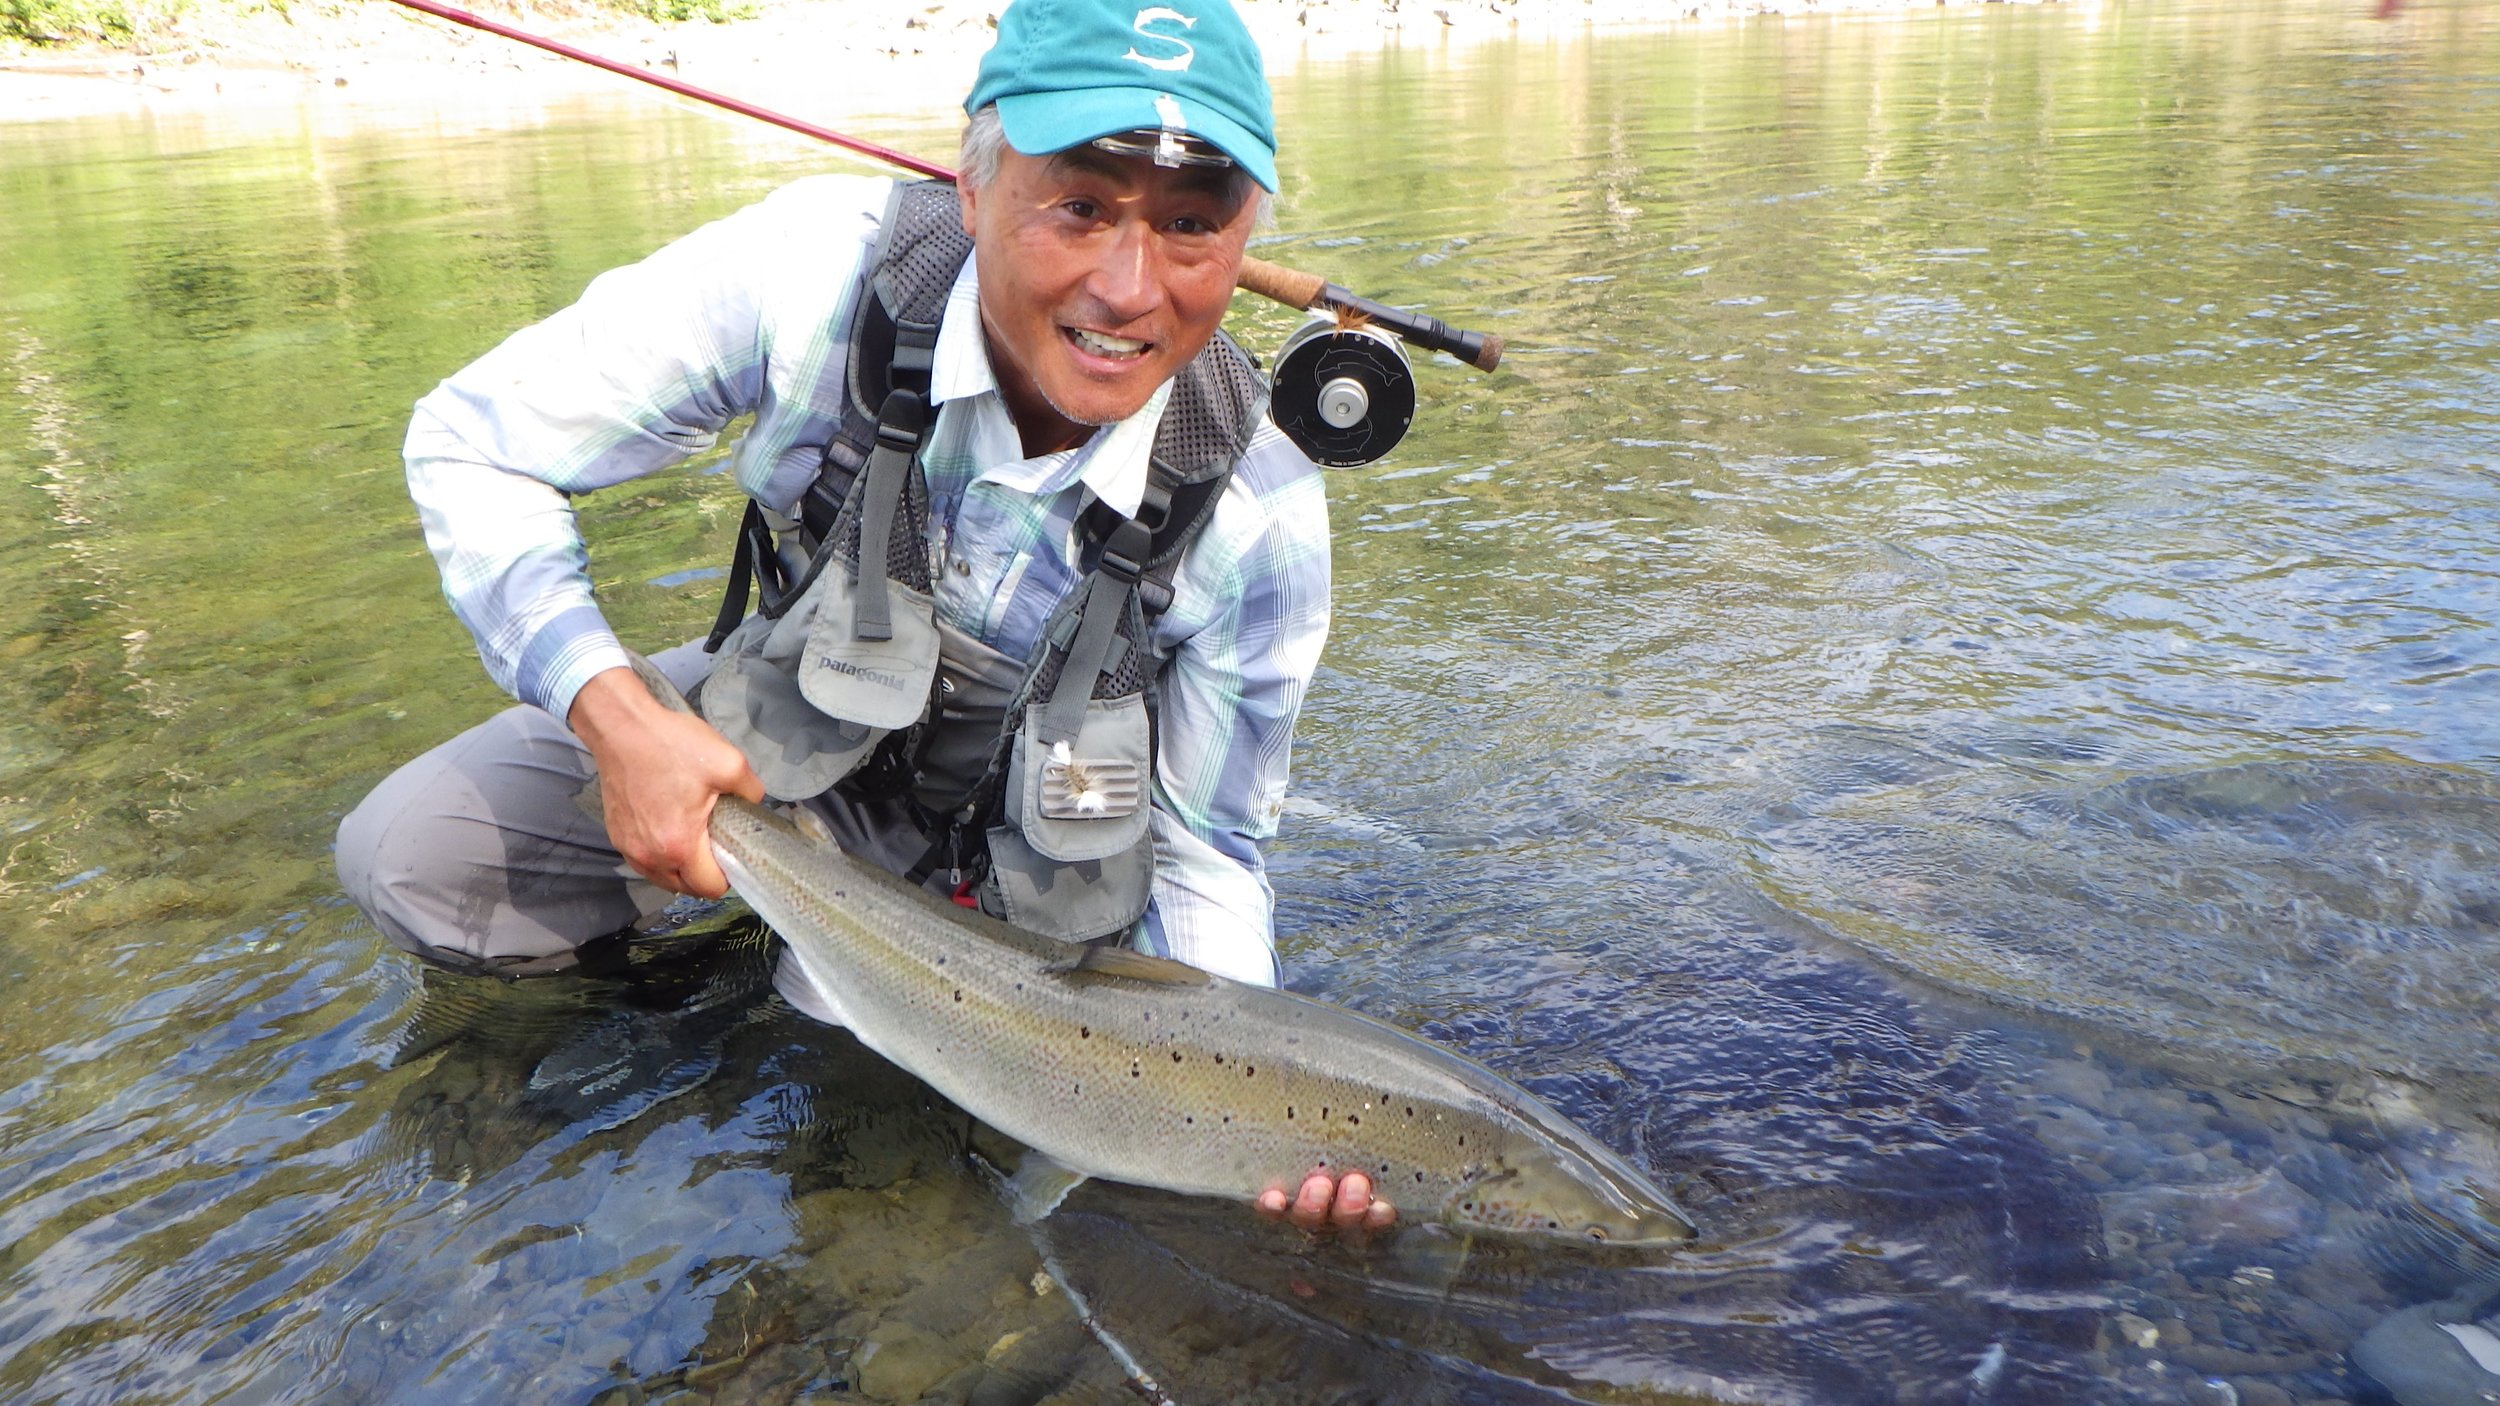 Camp Bonaventure regular Rick Koe sure knows how to catch them, congratulations Rick, see you next year!